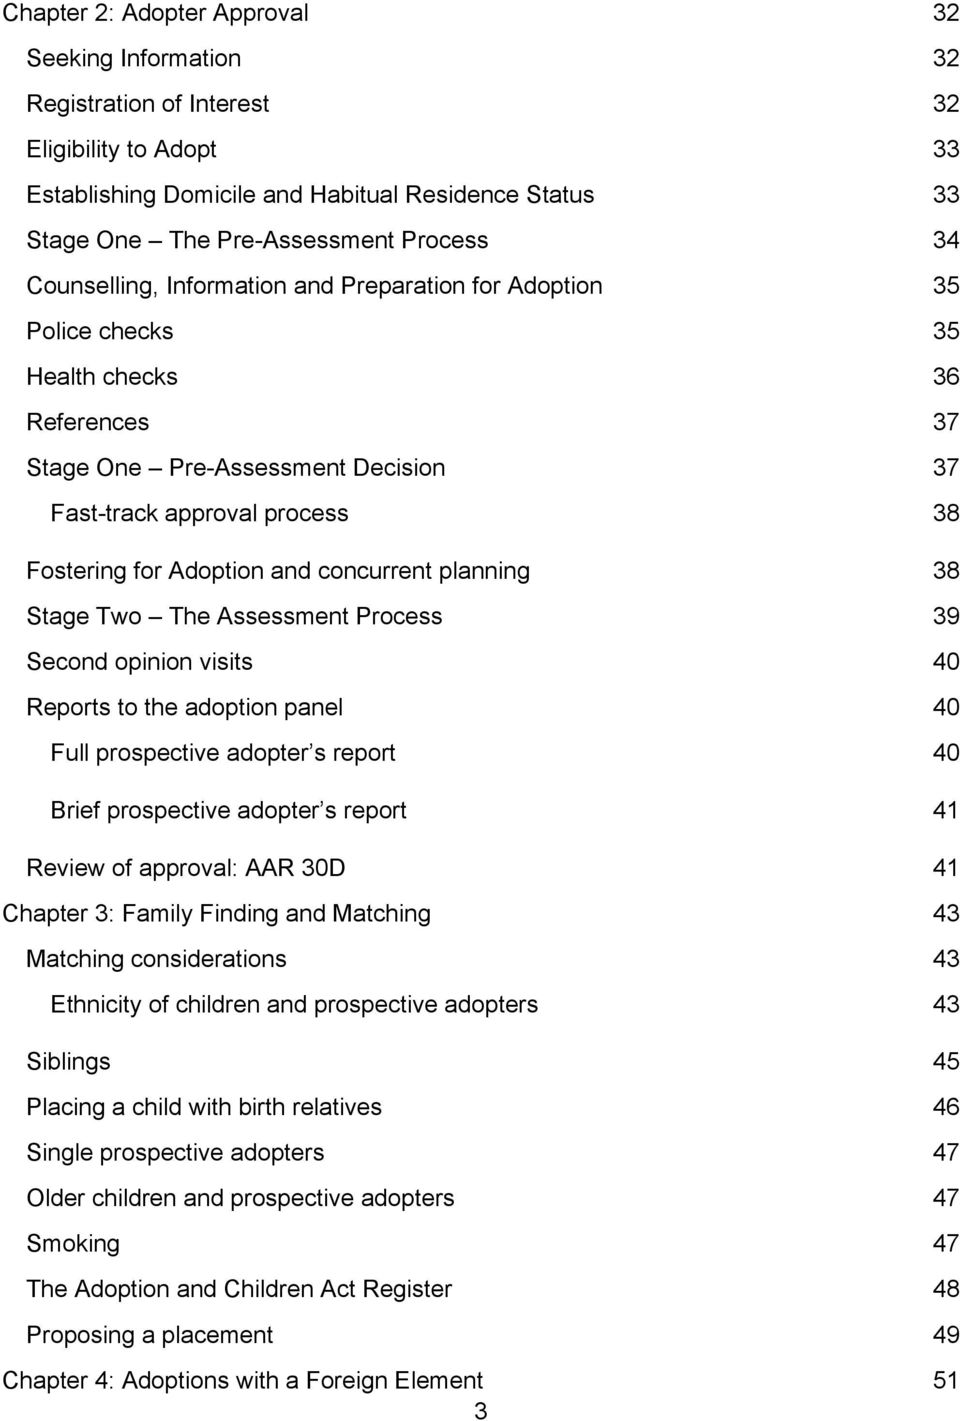 and concurrent planning 38 Stage Two The Assessment Process 39 Second opinion visits 40 Reports to the adoption panel 40 Full prospective adopter s report 40 Brief prospective adopter s report 41